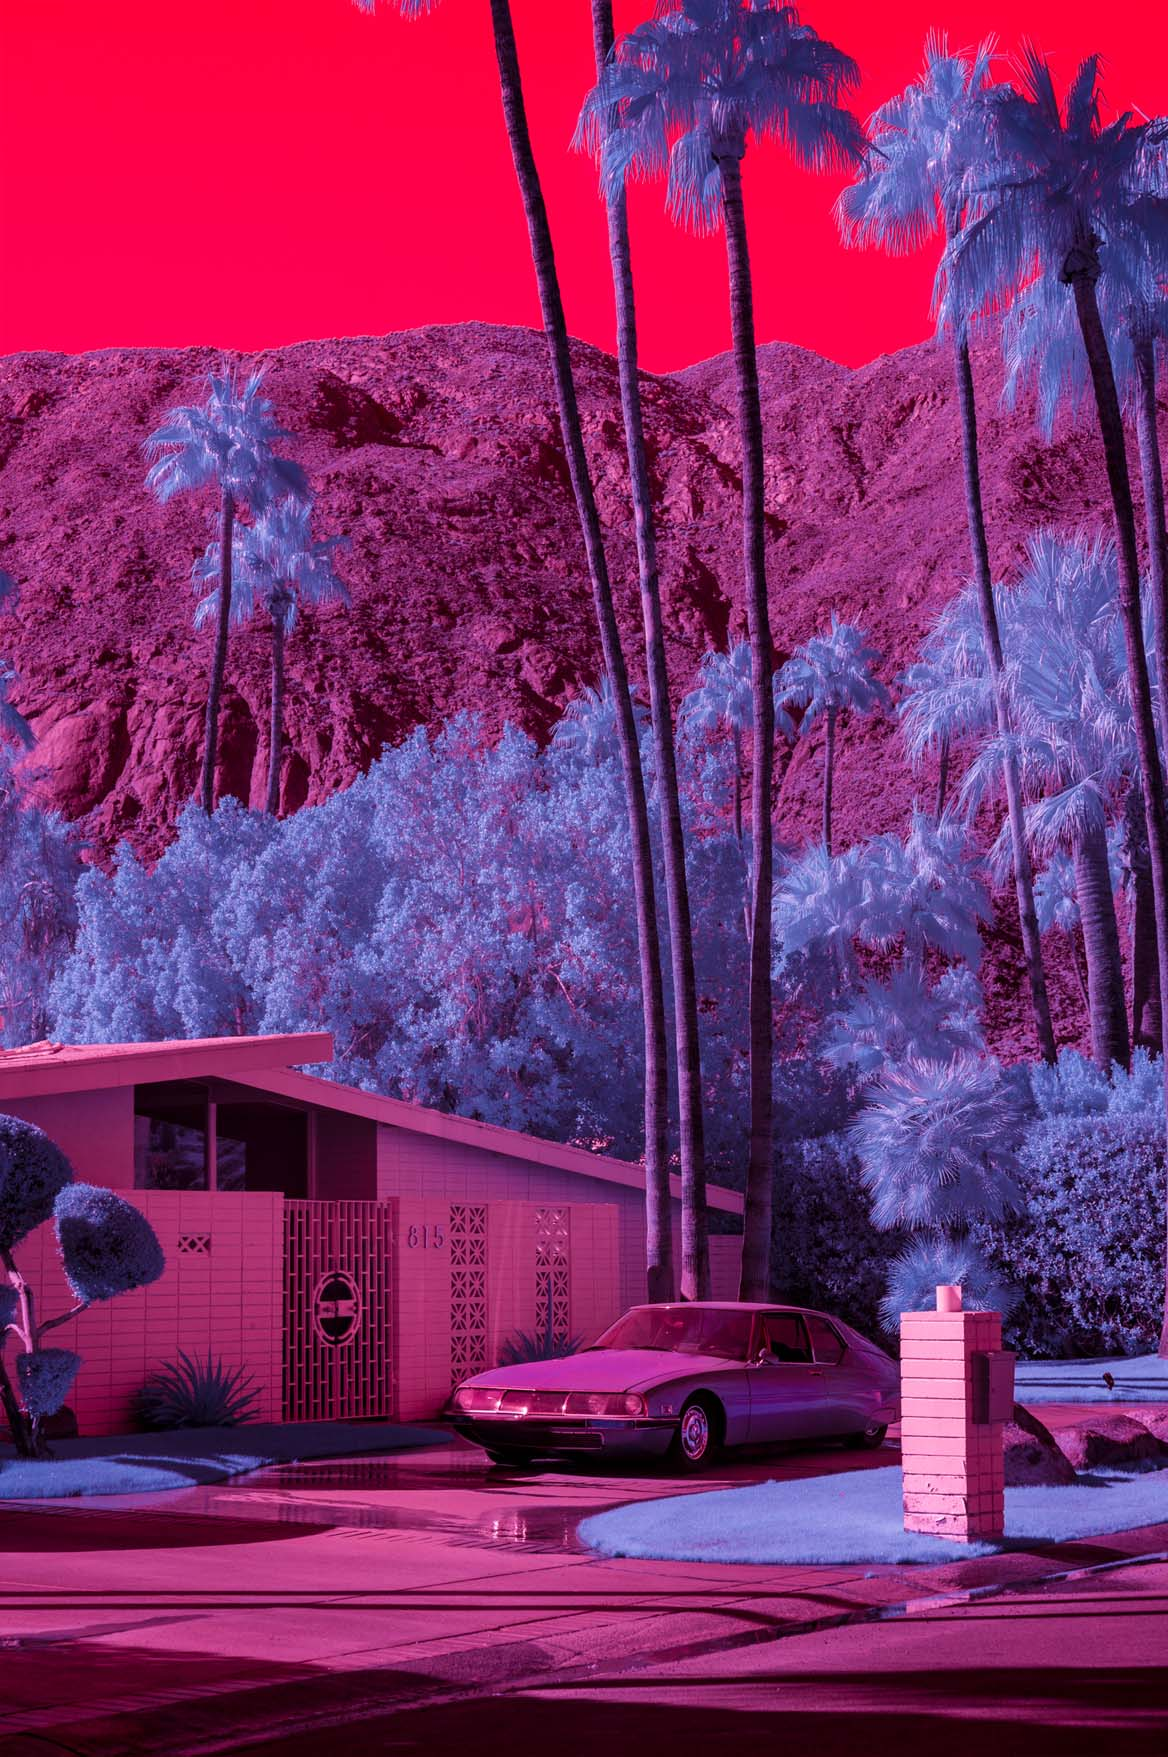 Infrared image of Vista Las Palmas with Citroën car in the driveway